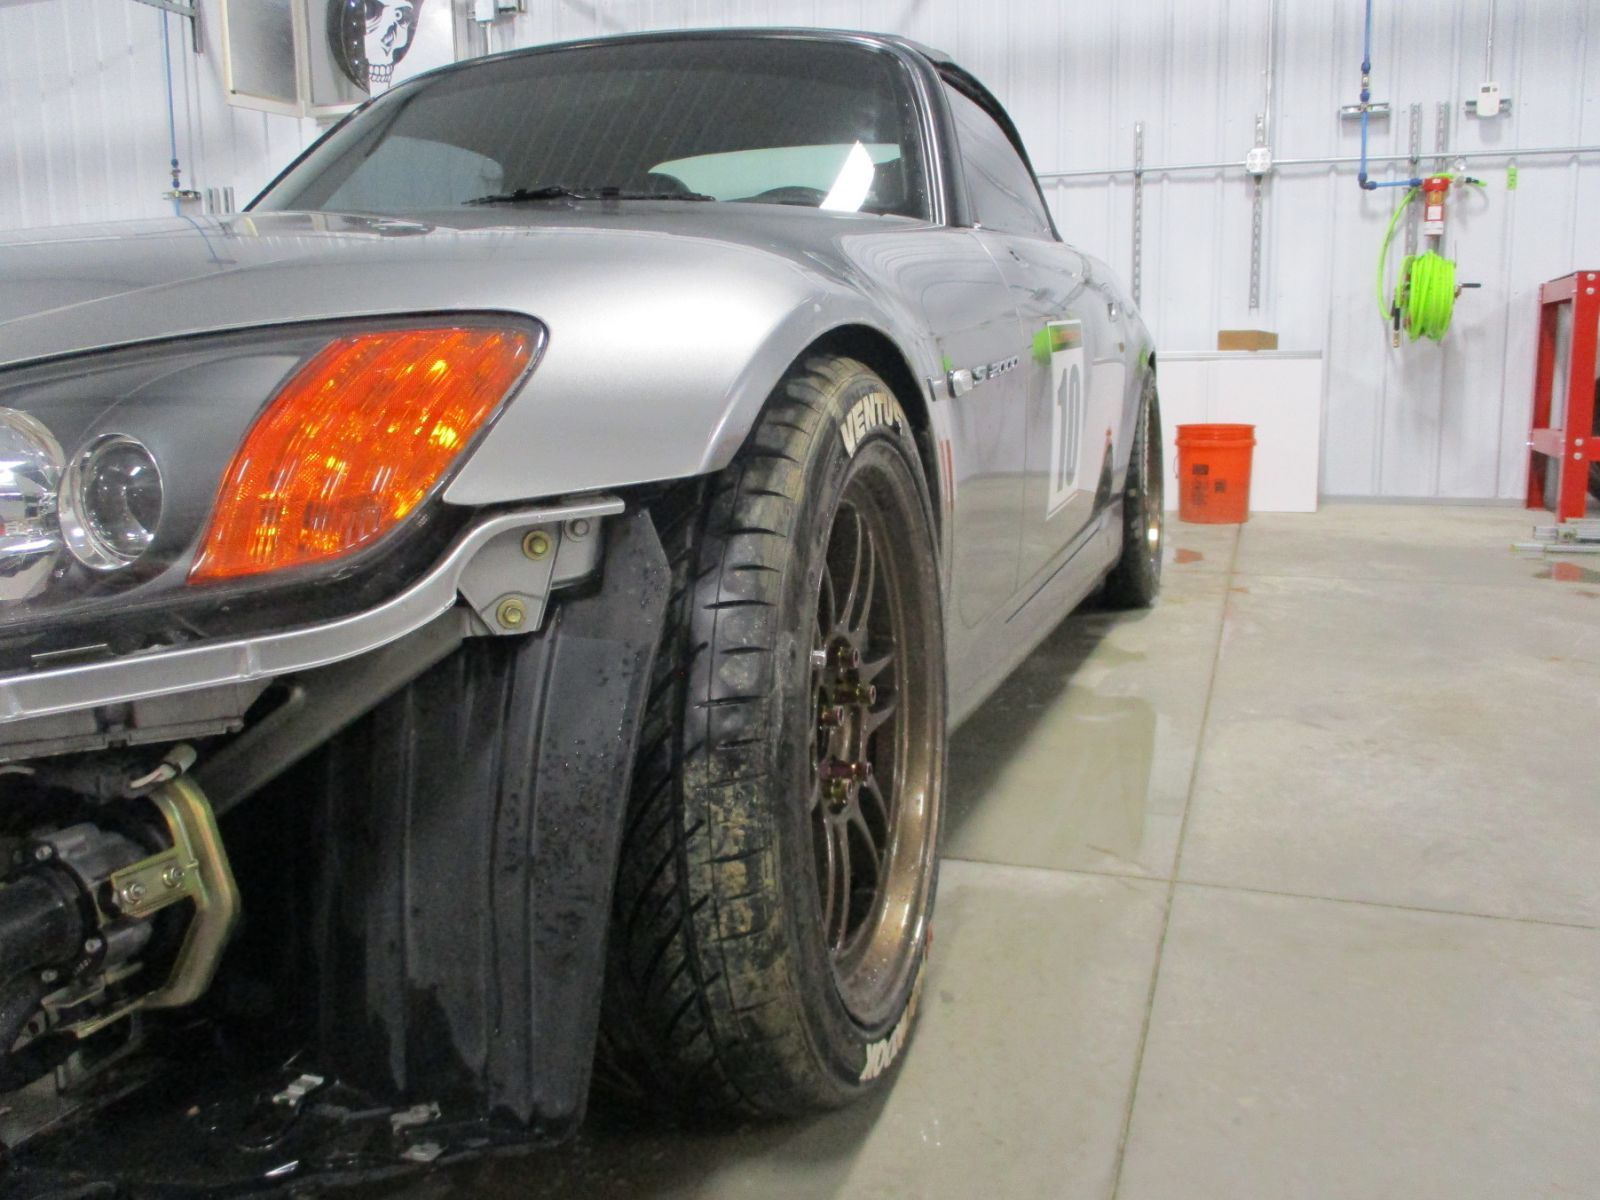 2001 Honda S2000 Paint And Body - Cleveland Power & Performance